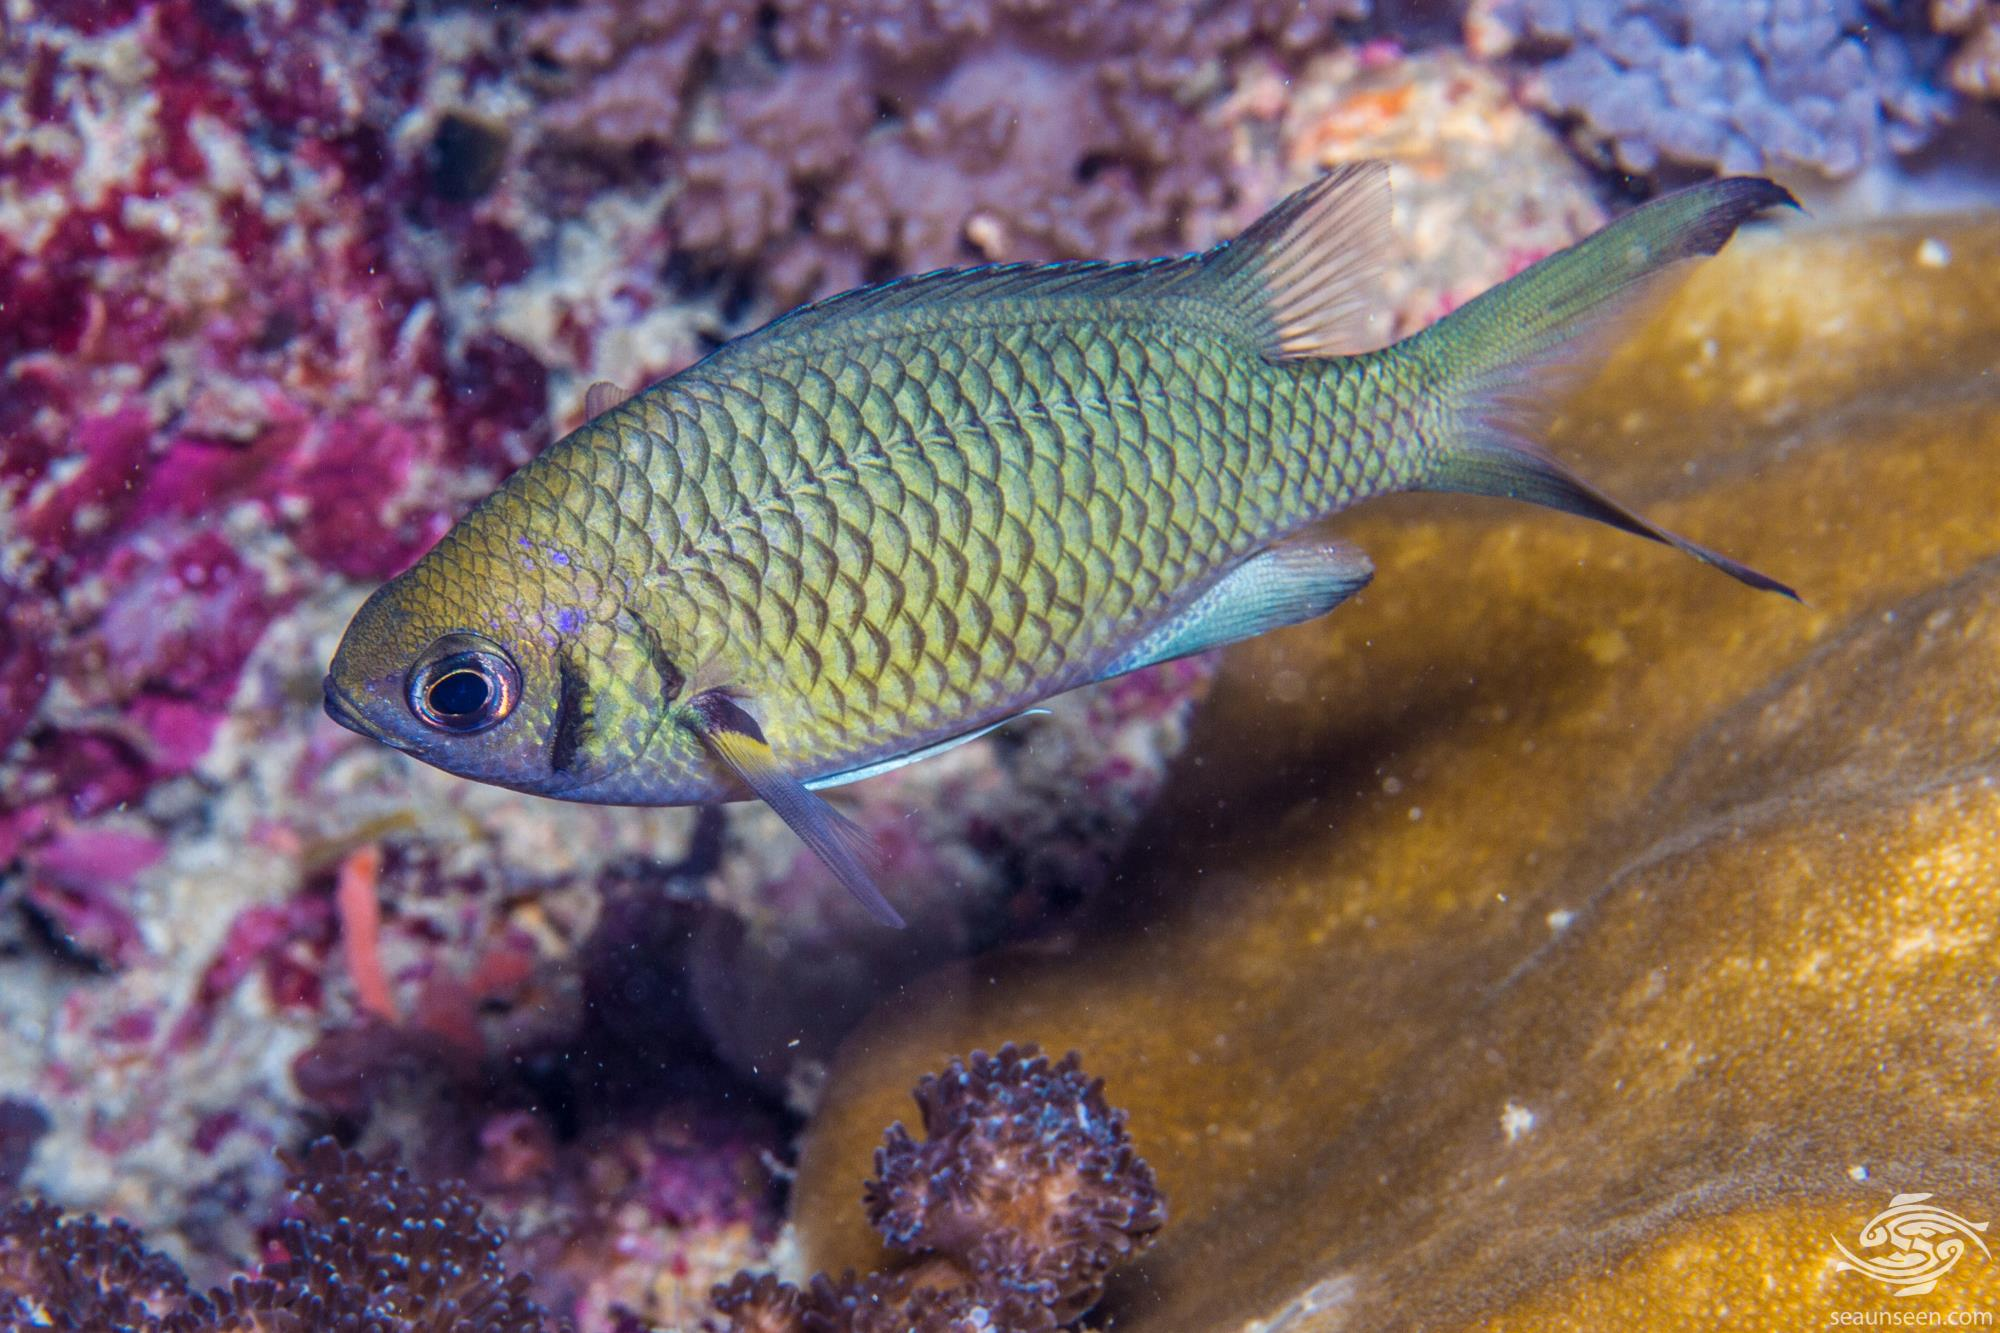 Weber's Chromis ( Chromis weberi) also known as the Dark Bar Chromis